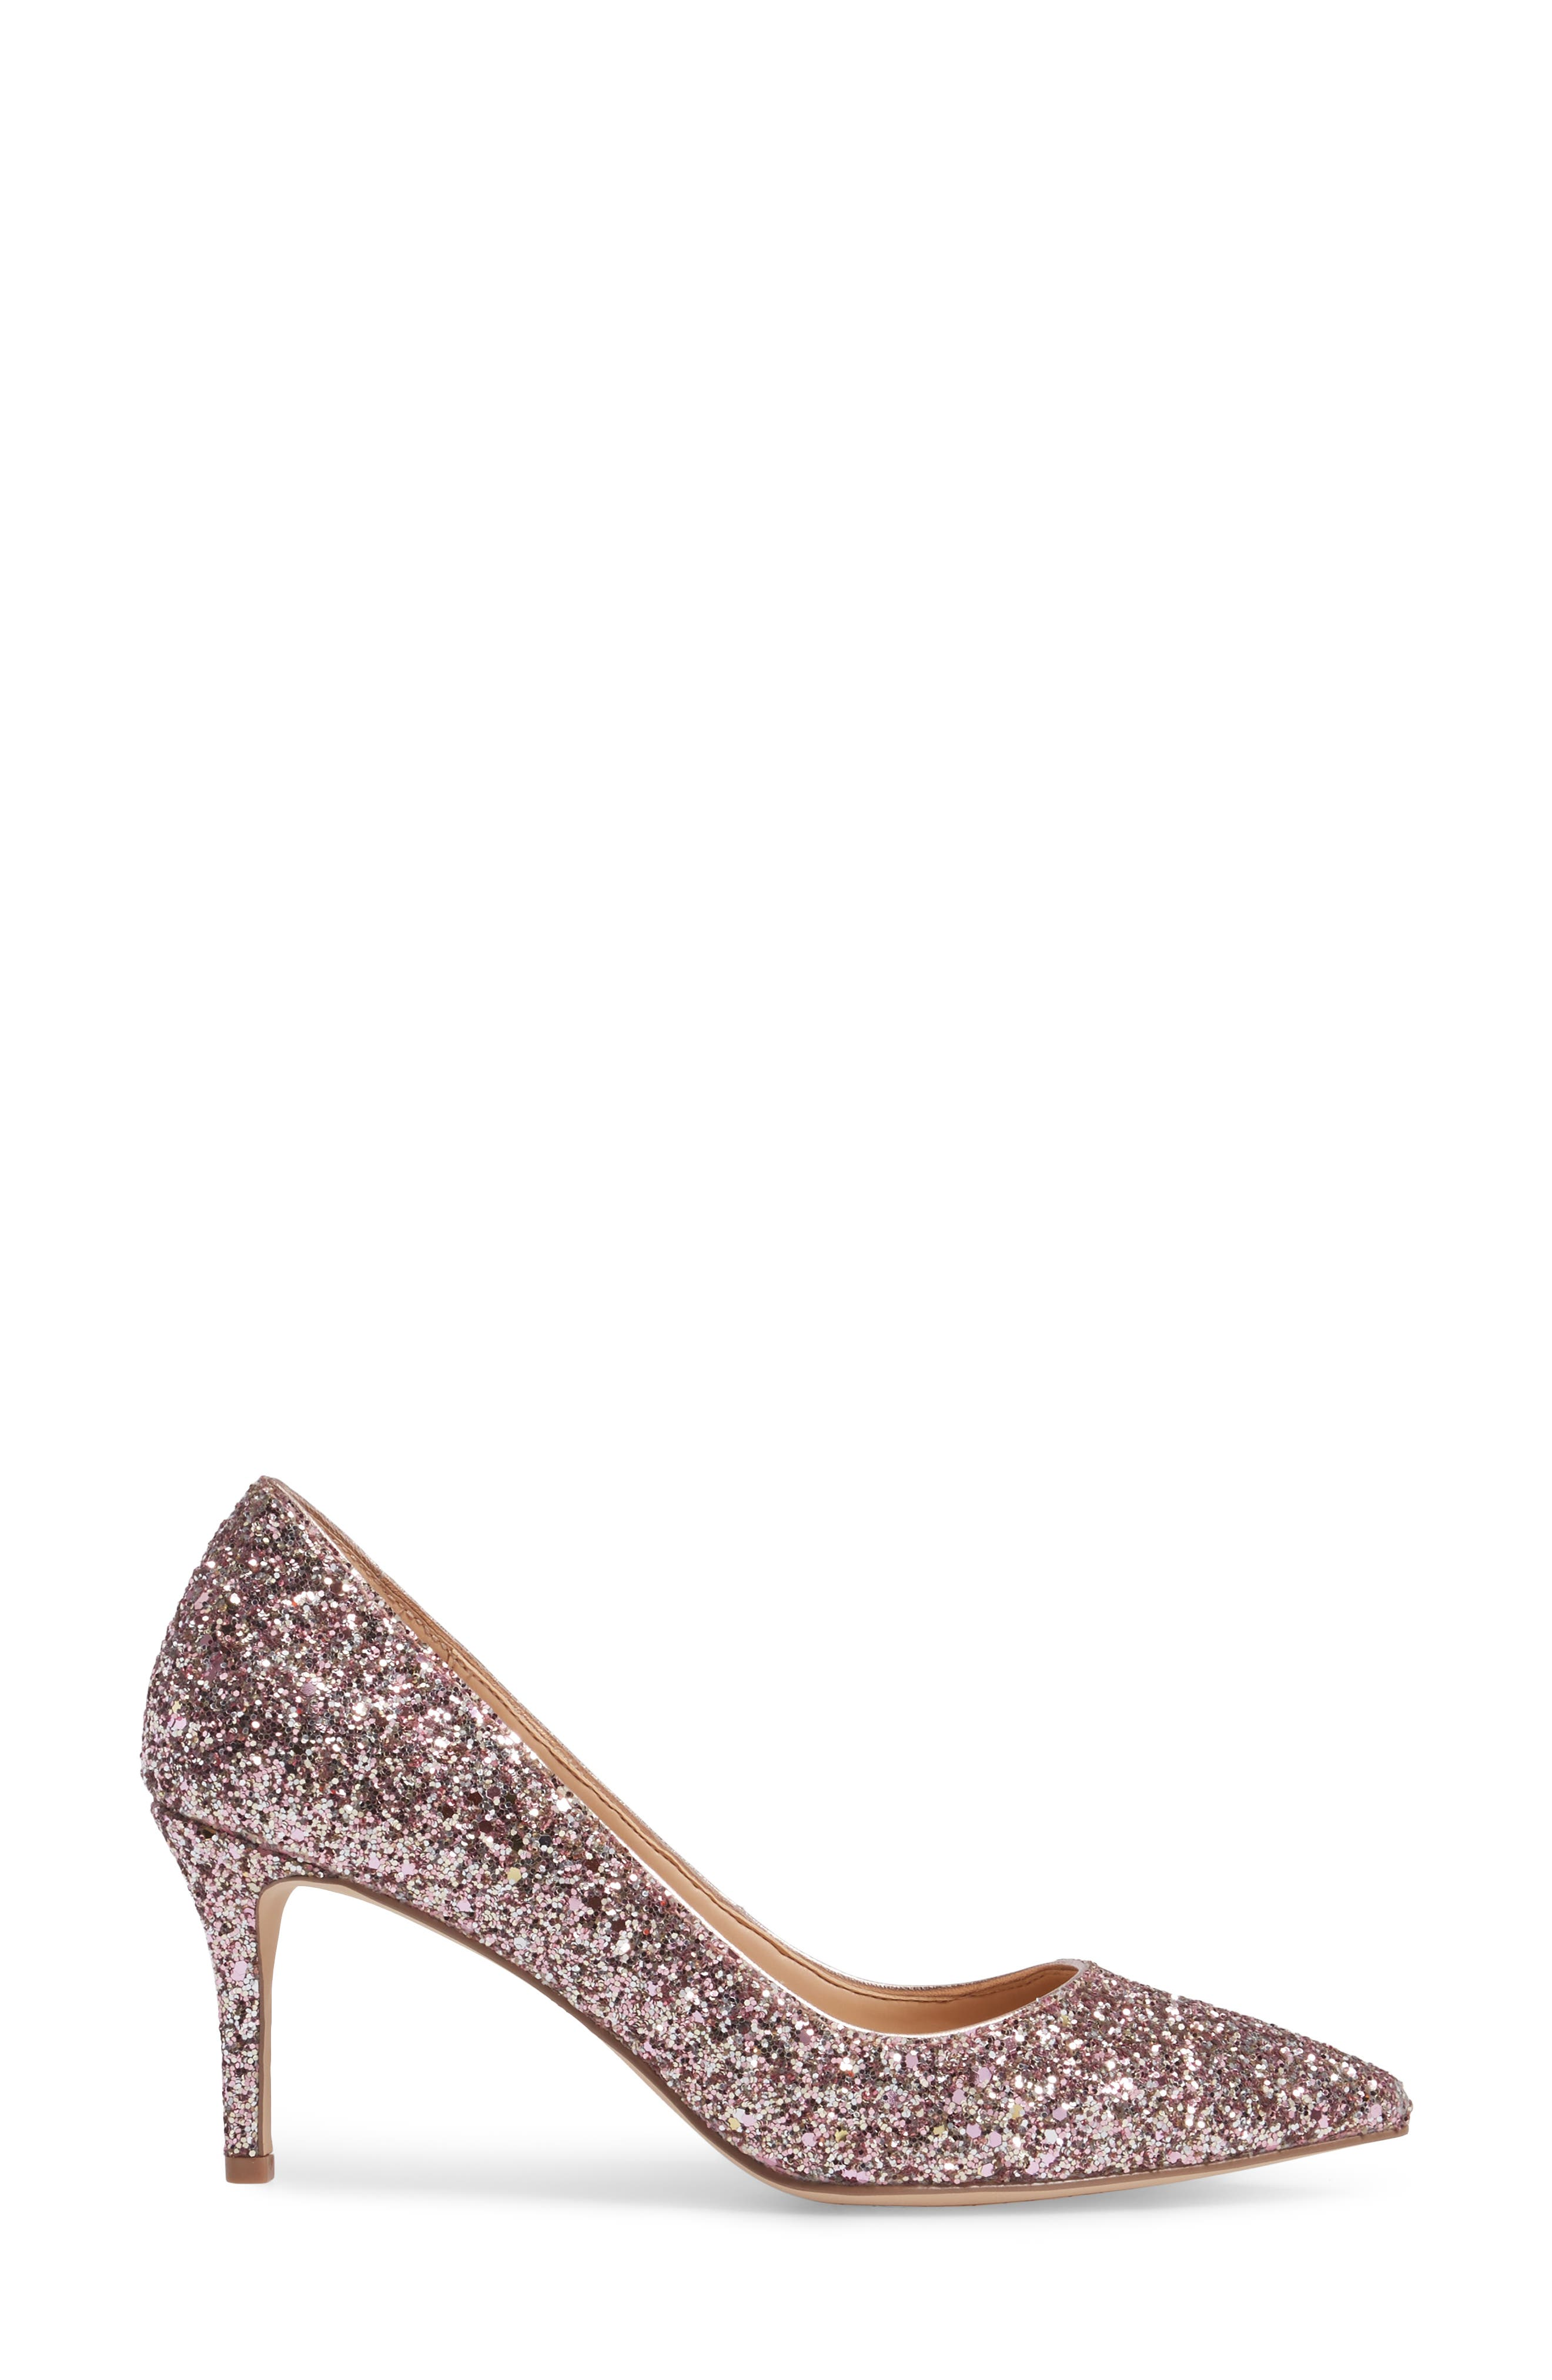 Lyla Glitter Pointy Toe Pump,                             Alternate thumbnail 3, color,                             ROSE GOLD